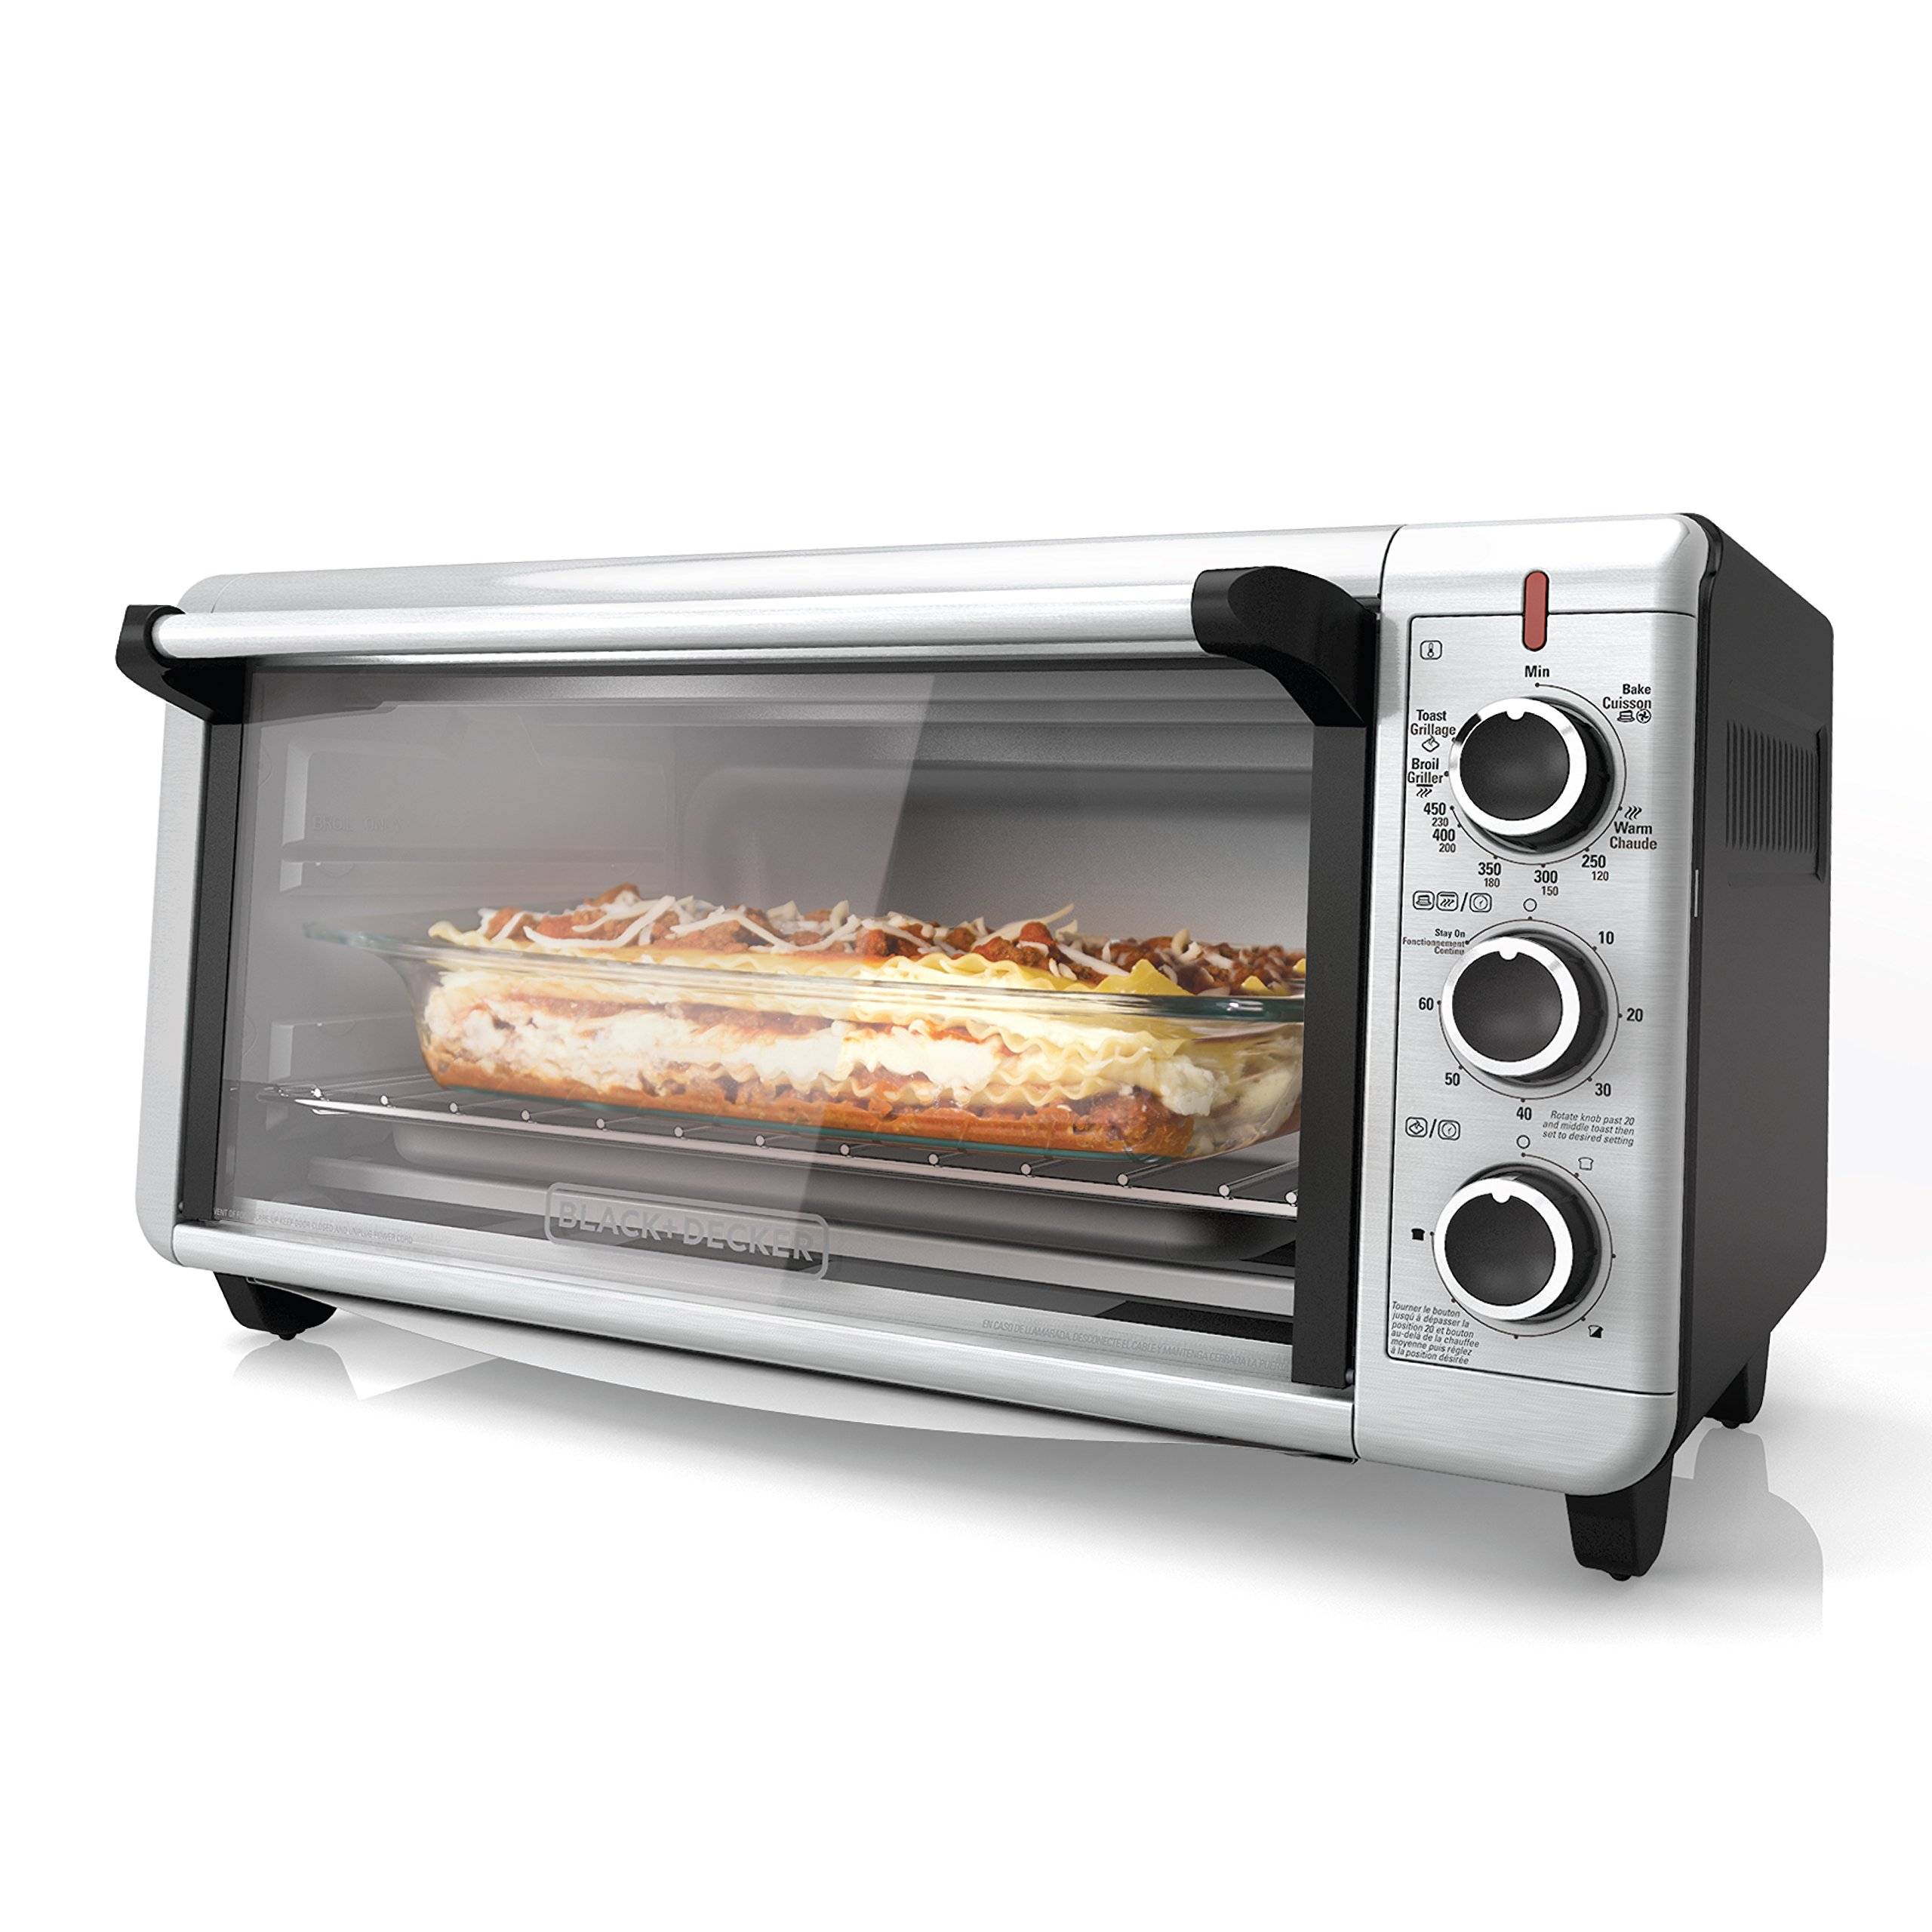 BLACK+DECKER 8-Slice Extra-Wide Countertop Convection Toaster Oven - Instant Pot